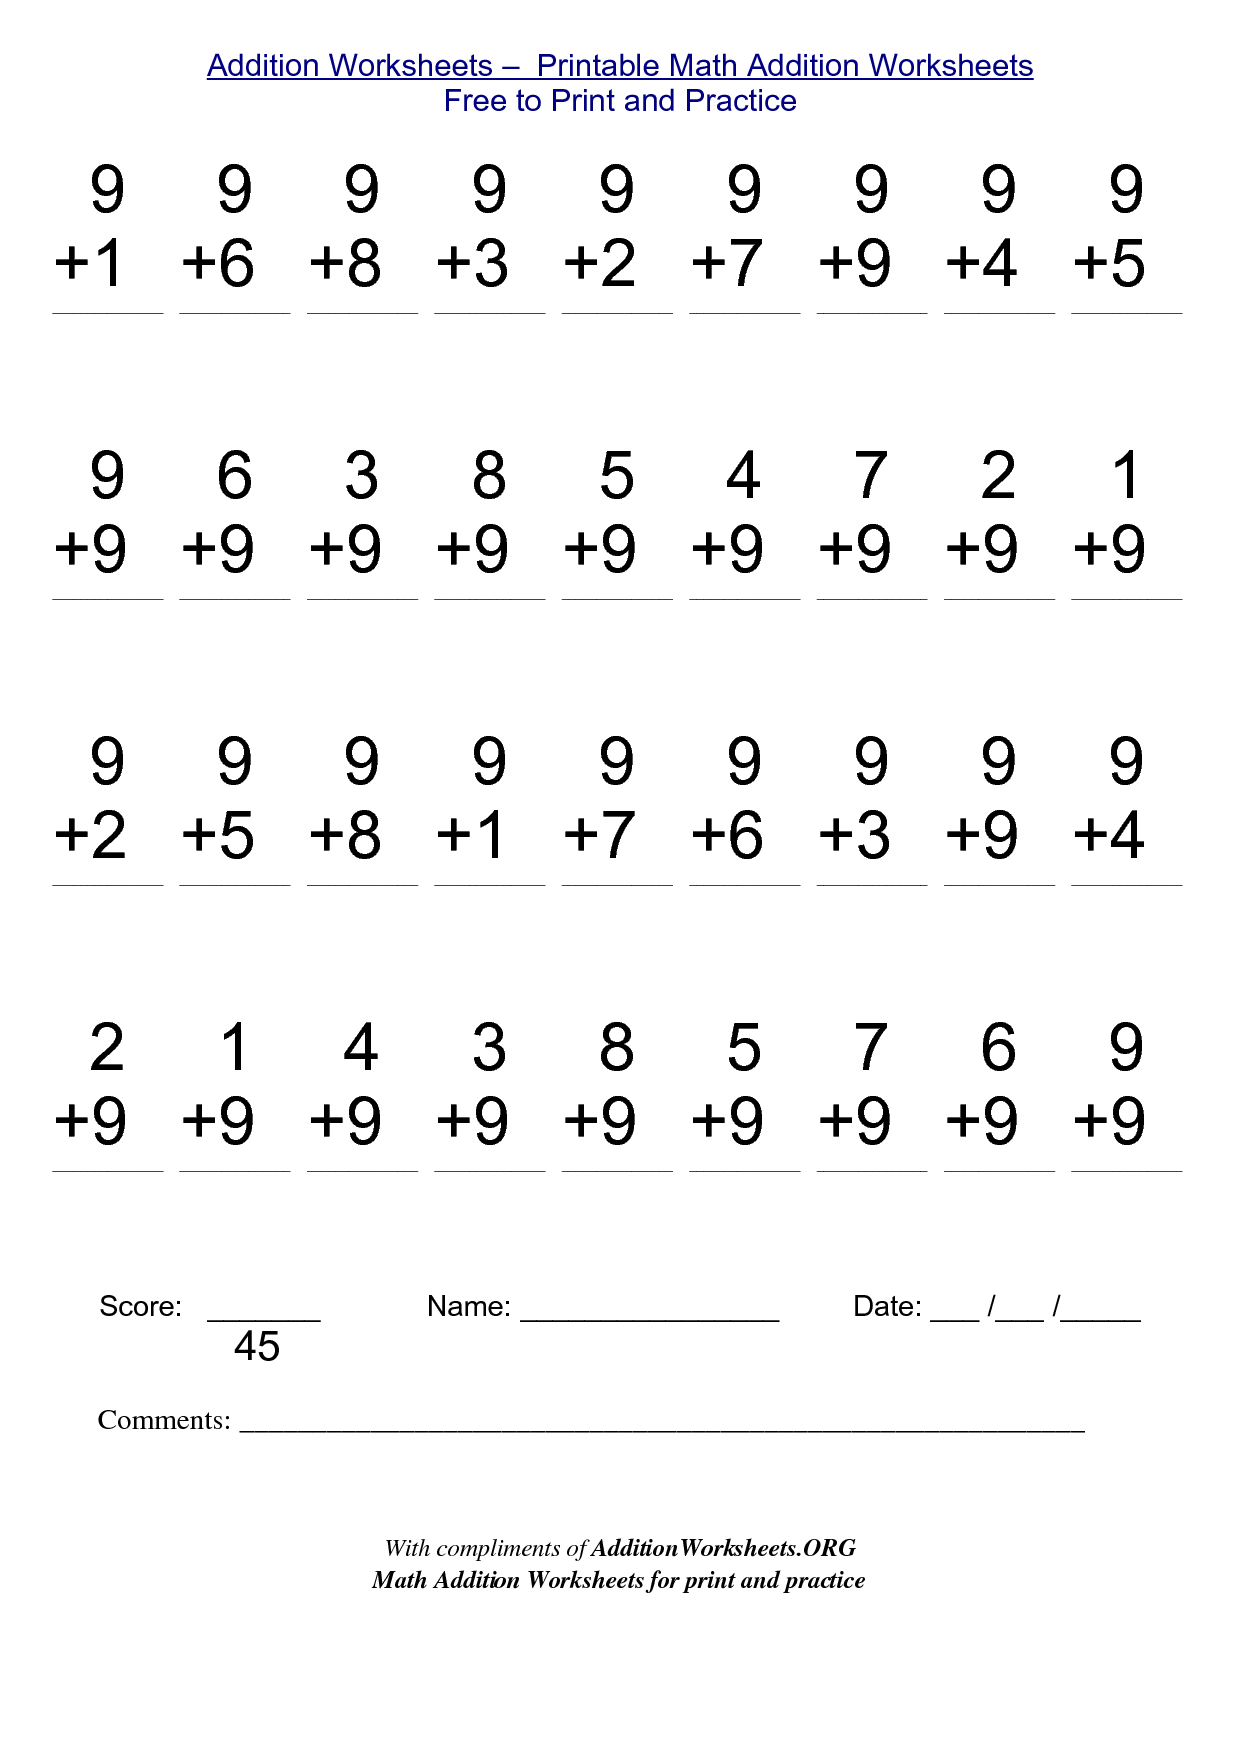 Free Worksheet 100 Addition Facts 120 For Educators – Math Addition Worksheets